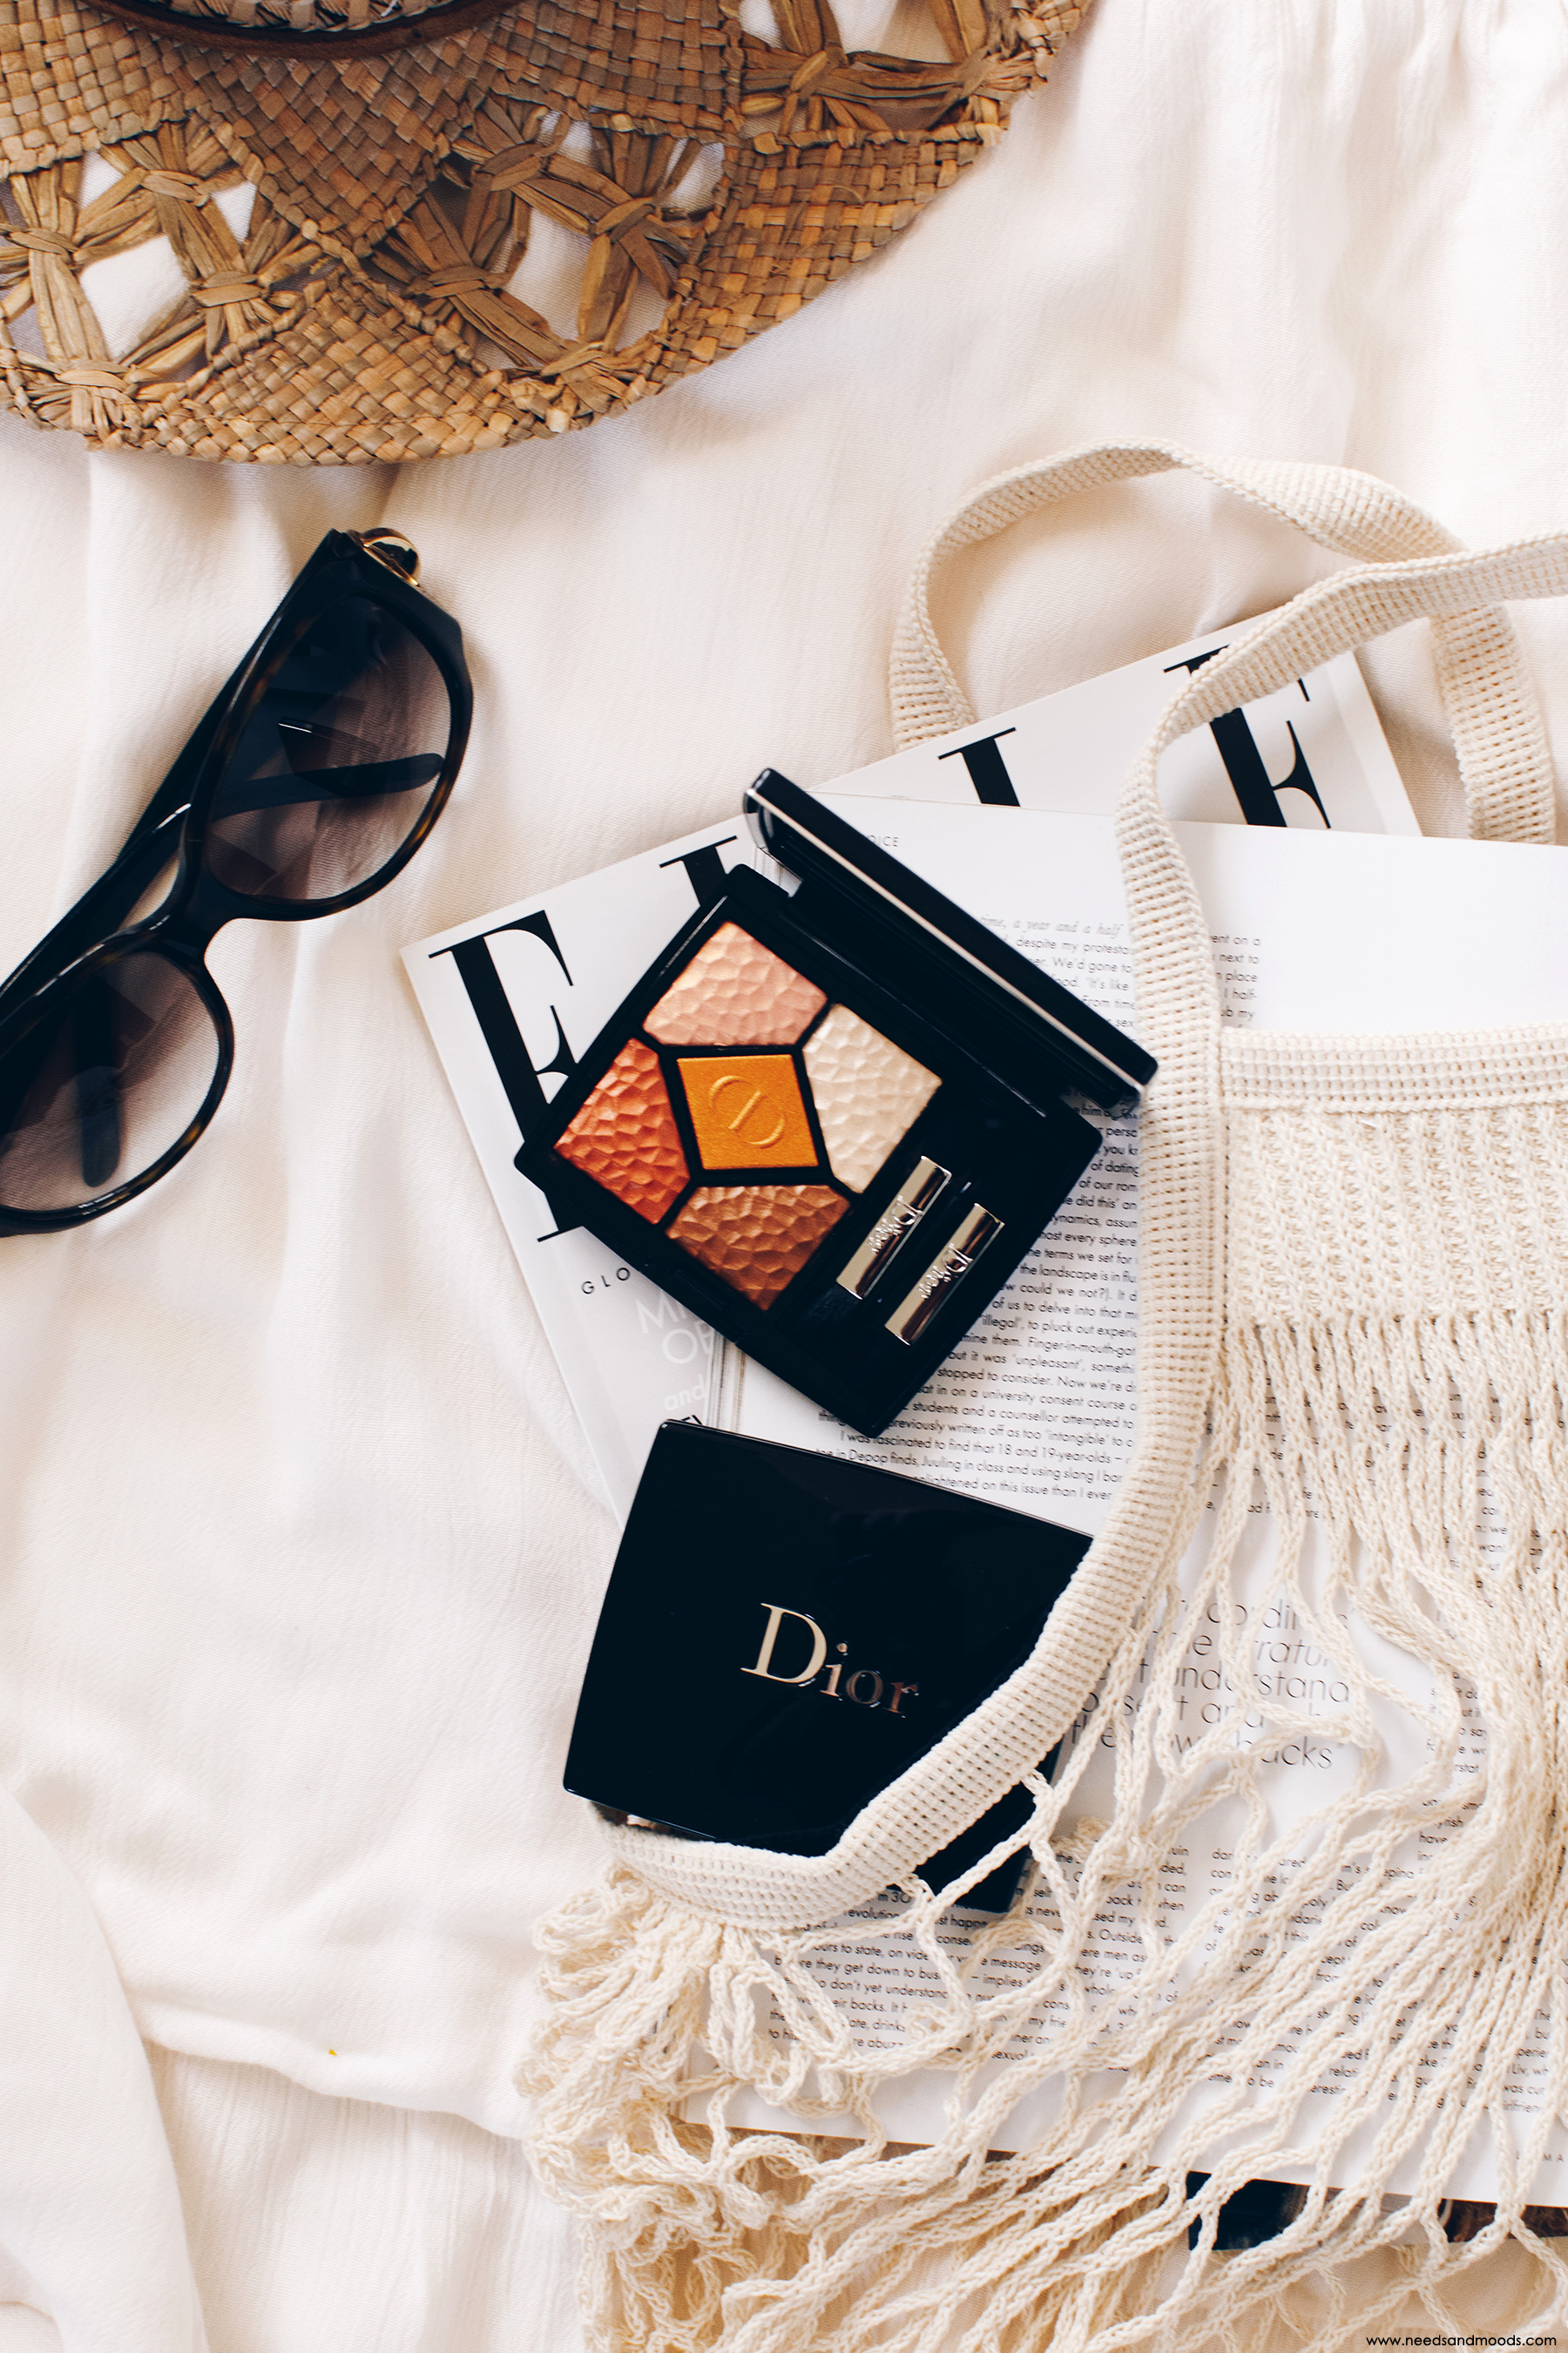 dior wild earth 5 couleurs